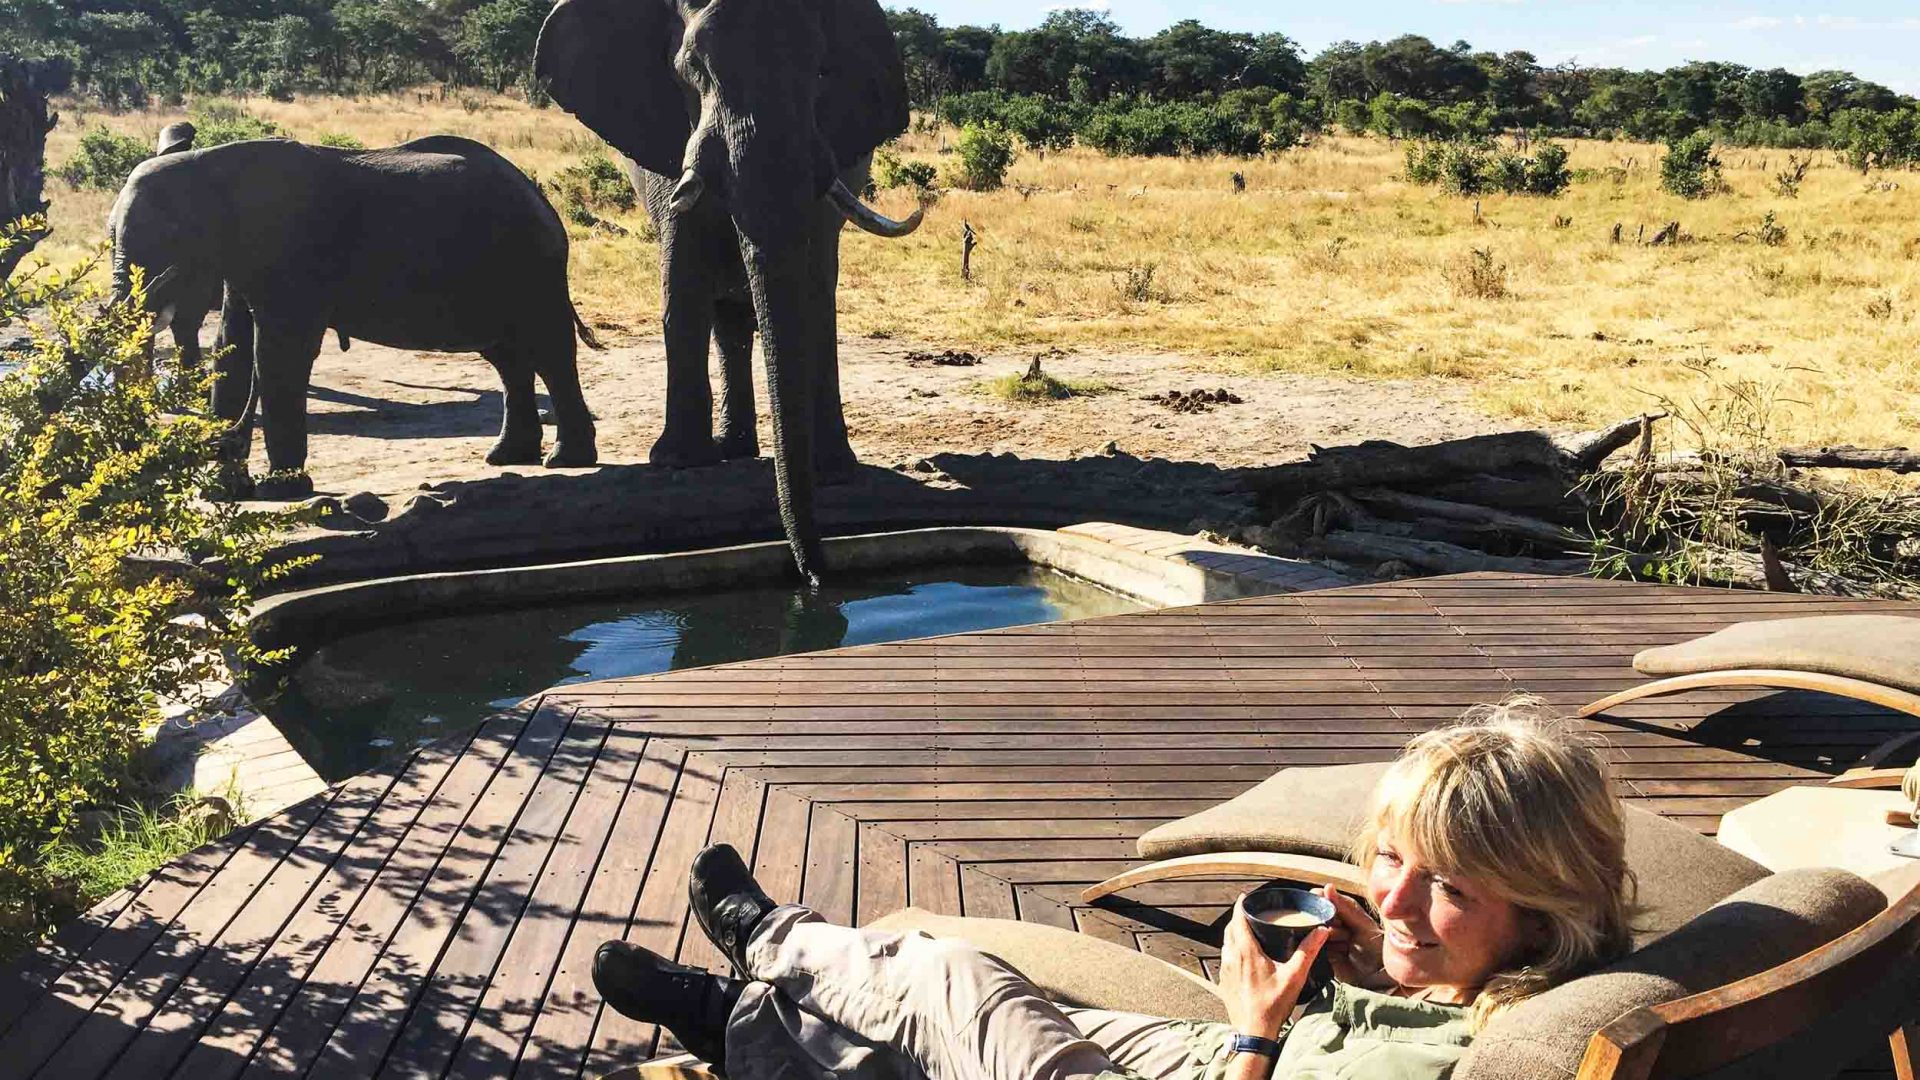 A tourist gets the best seats in the house for elephant viewing in Zimbabwe's Hwange National Park.